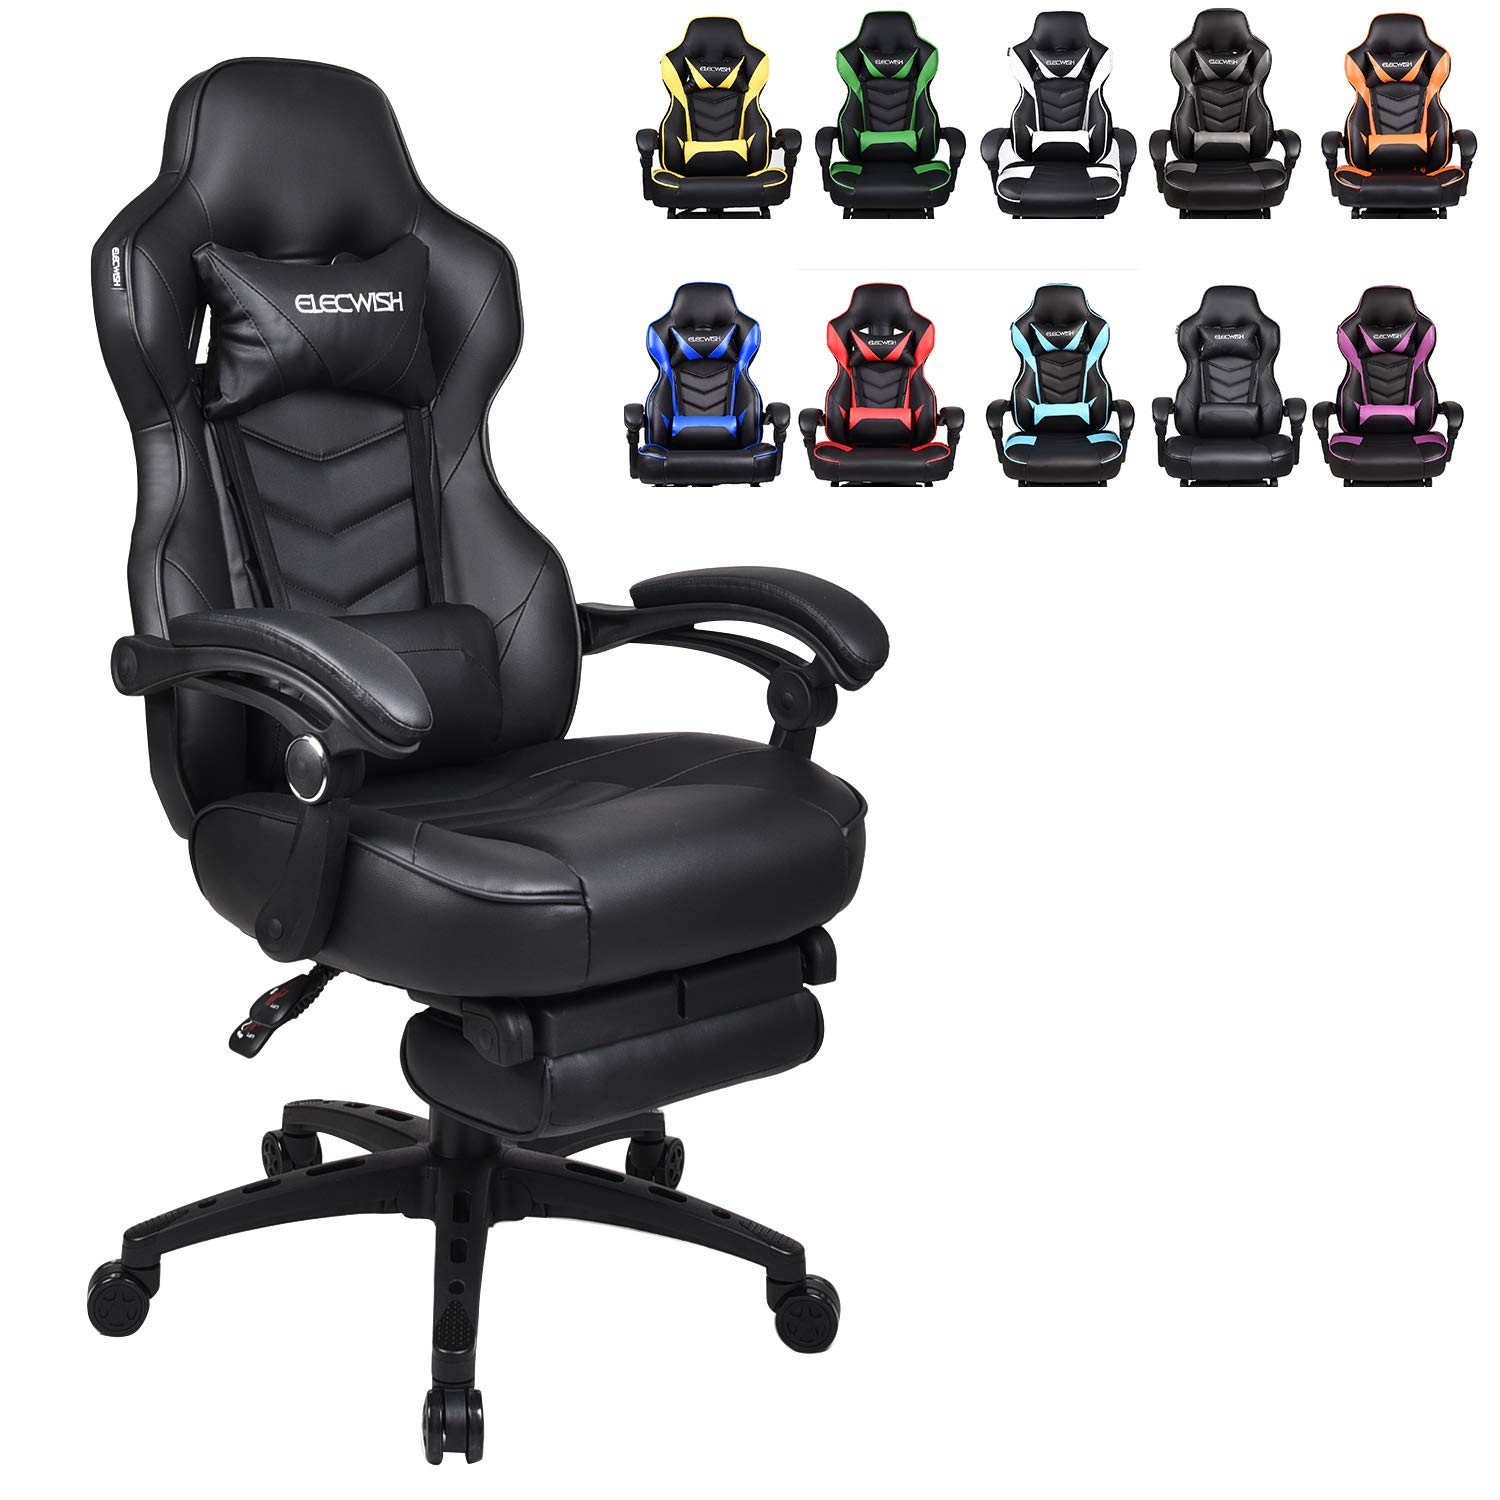 ELECWISH Racing Video Gaming Chair High Back Large Size Ergonomic Adjustable Swivel Reclining Executive Computer Gaming Chair with Headrest and Lumbar Support PU Leather Executive Office Chair Black by ELECWISH